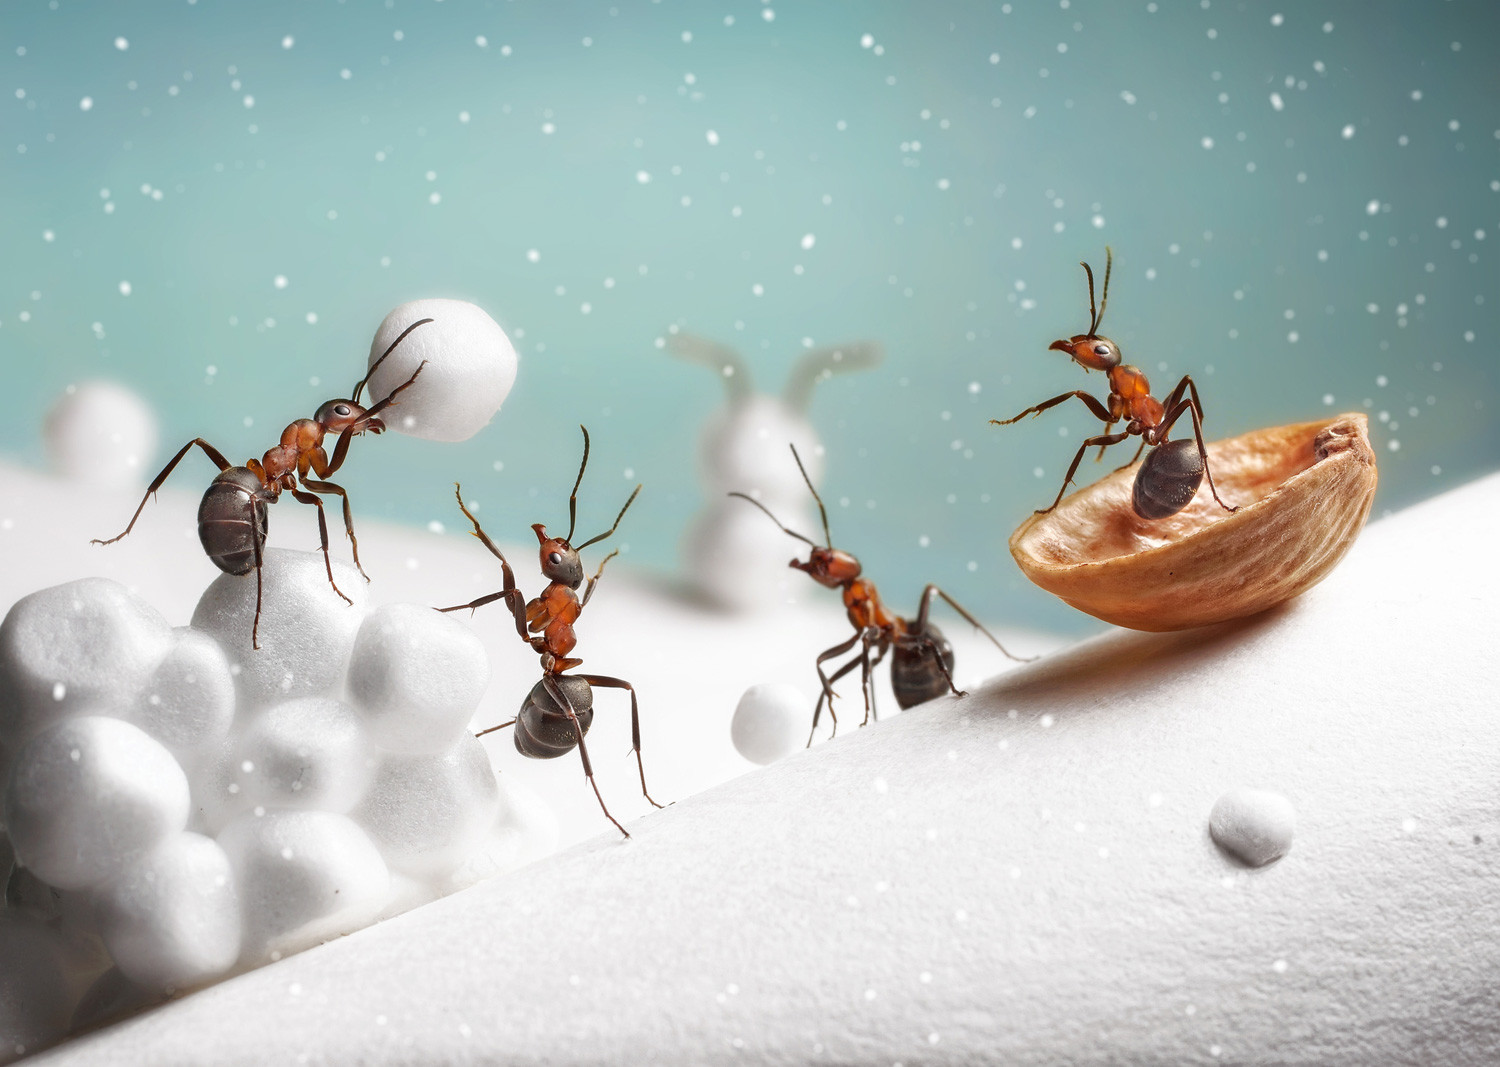 Insect antics: Russian photographer snaps stunning pics of complex ...